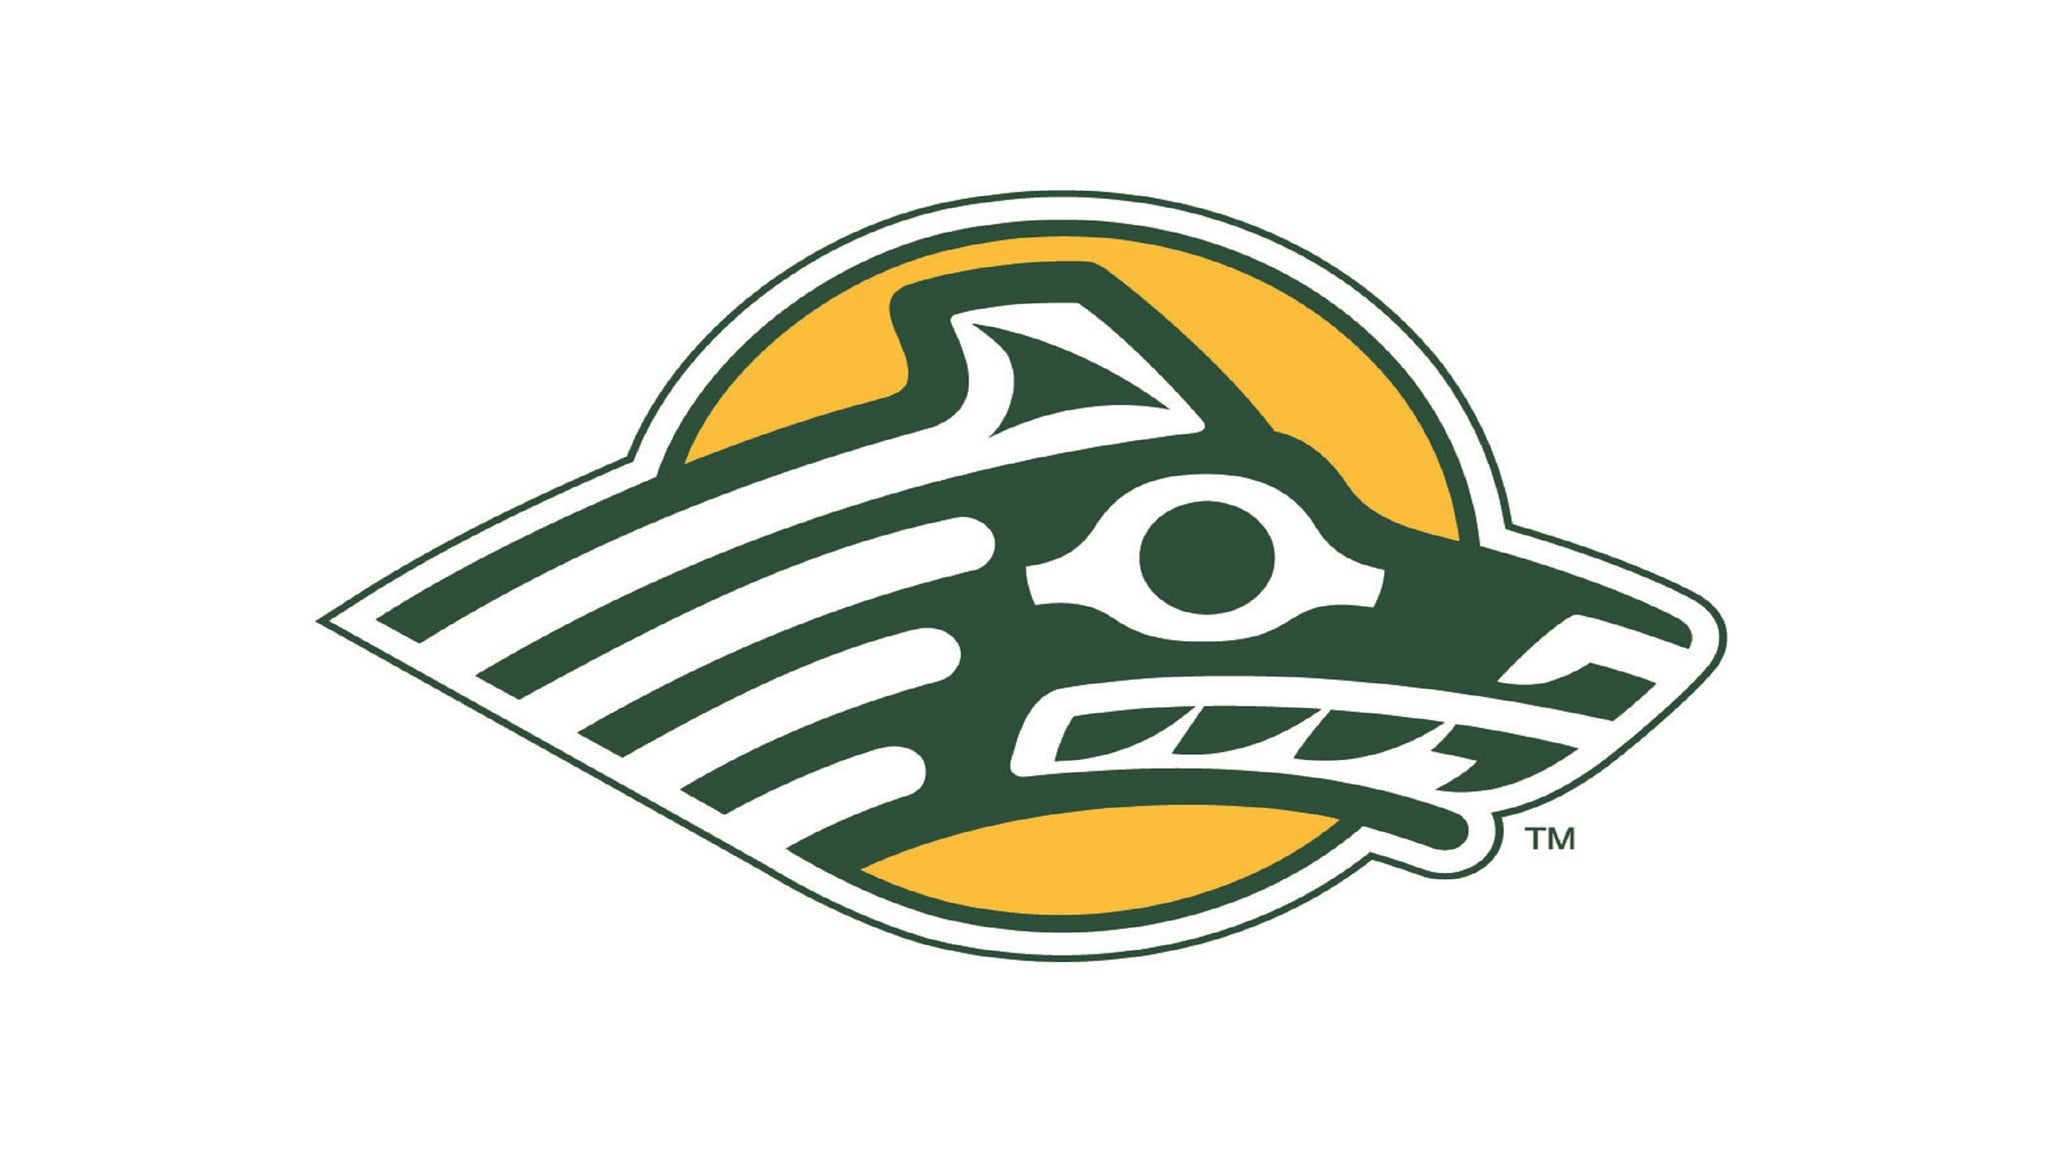 University of Alaska Anchorage Seawolves